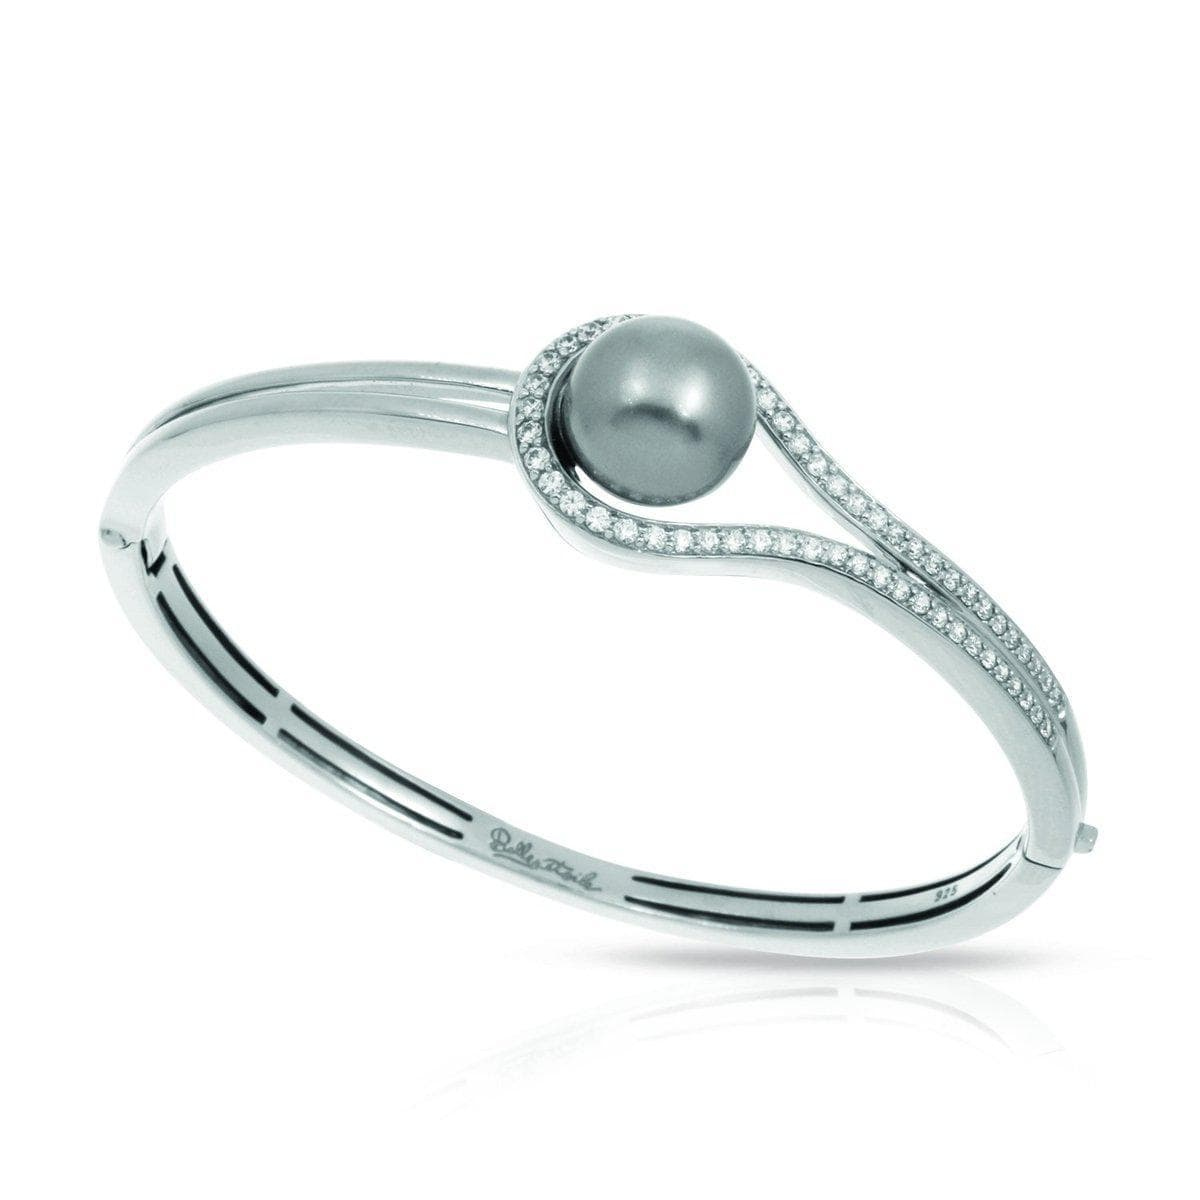 Claire Grey Bangle-Belle Etoile-Renee Taylor Gallery